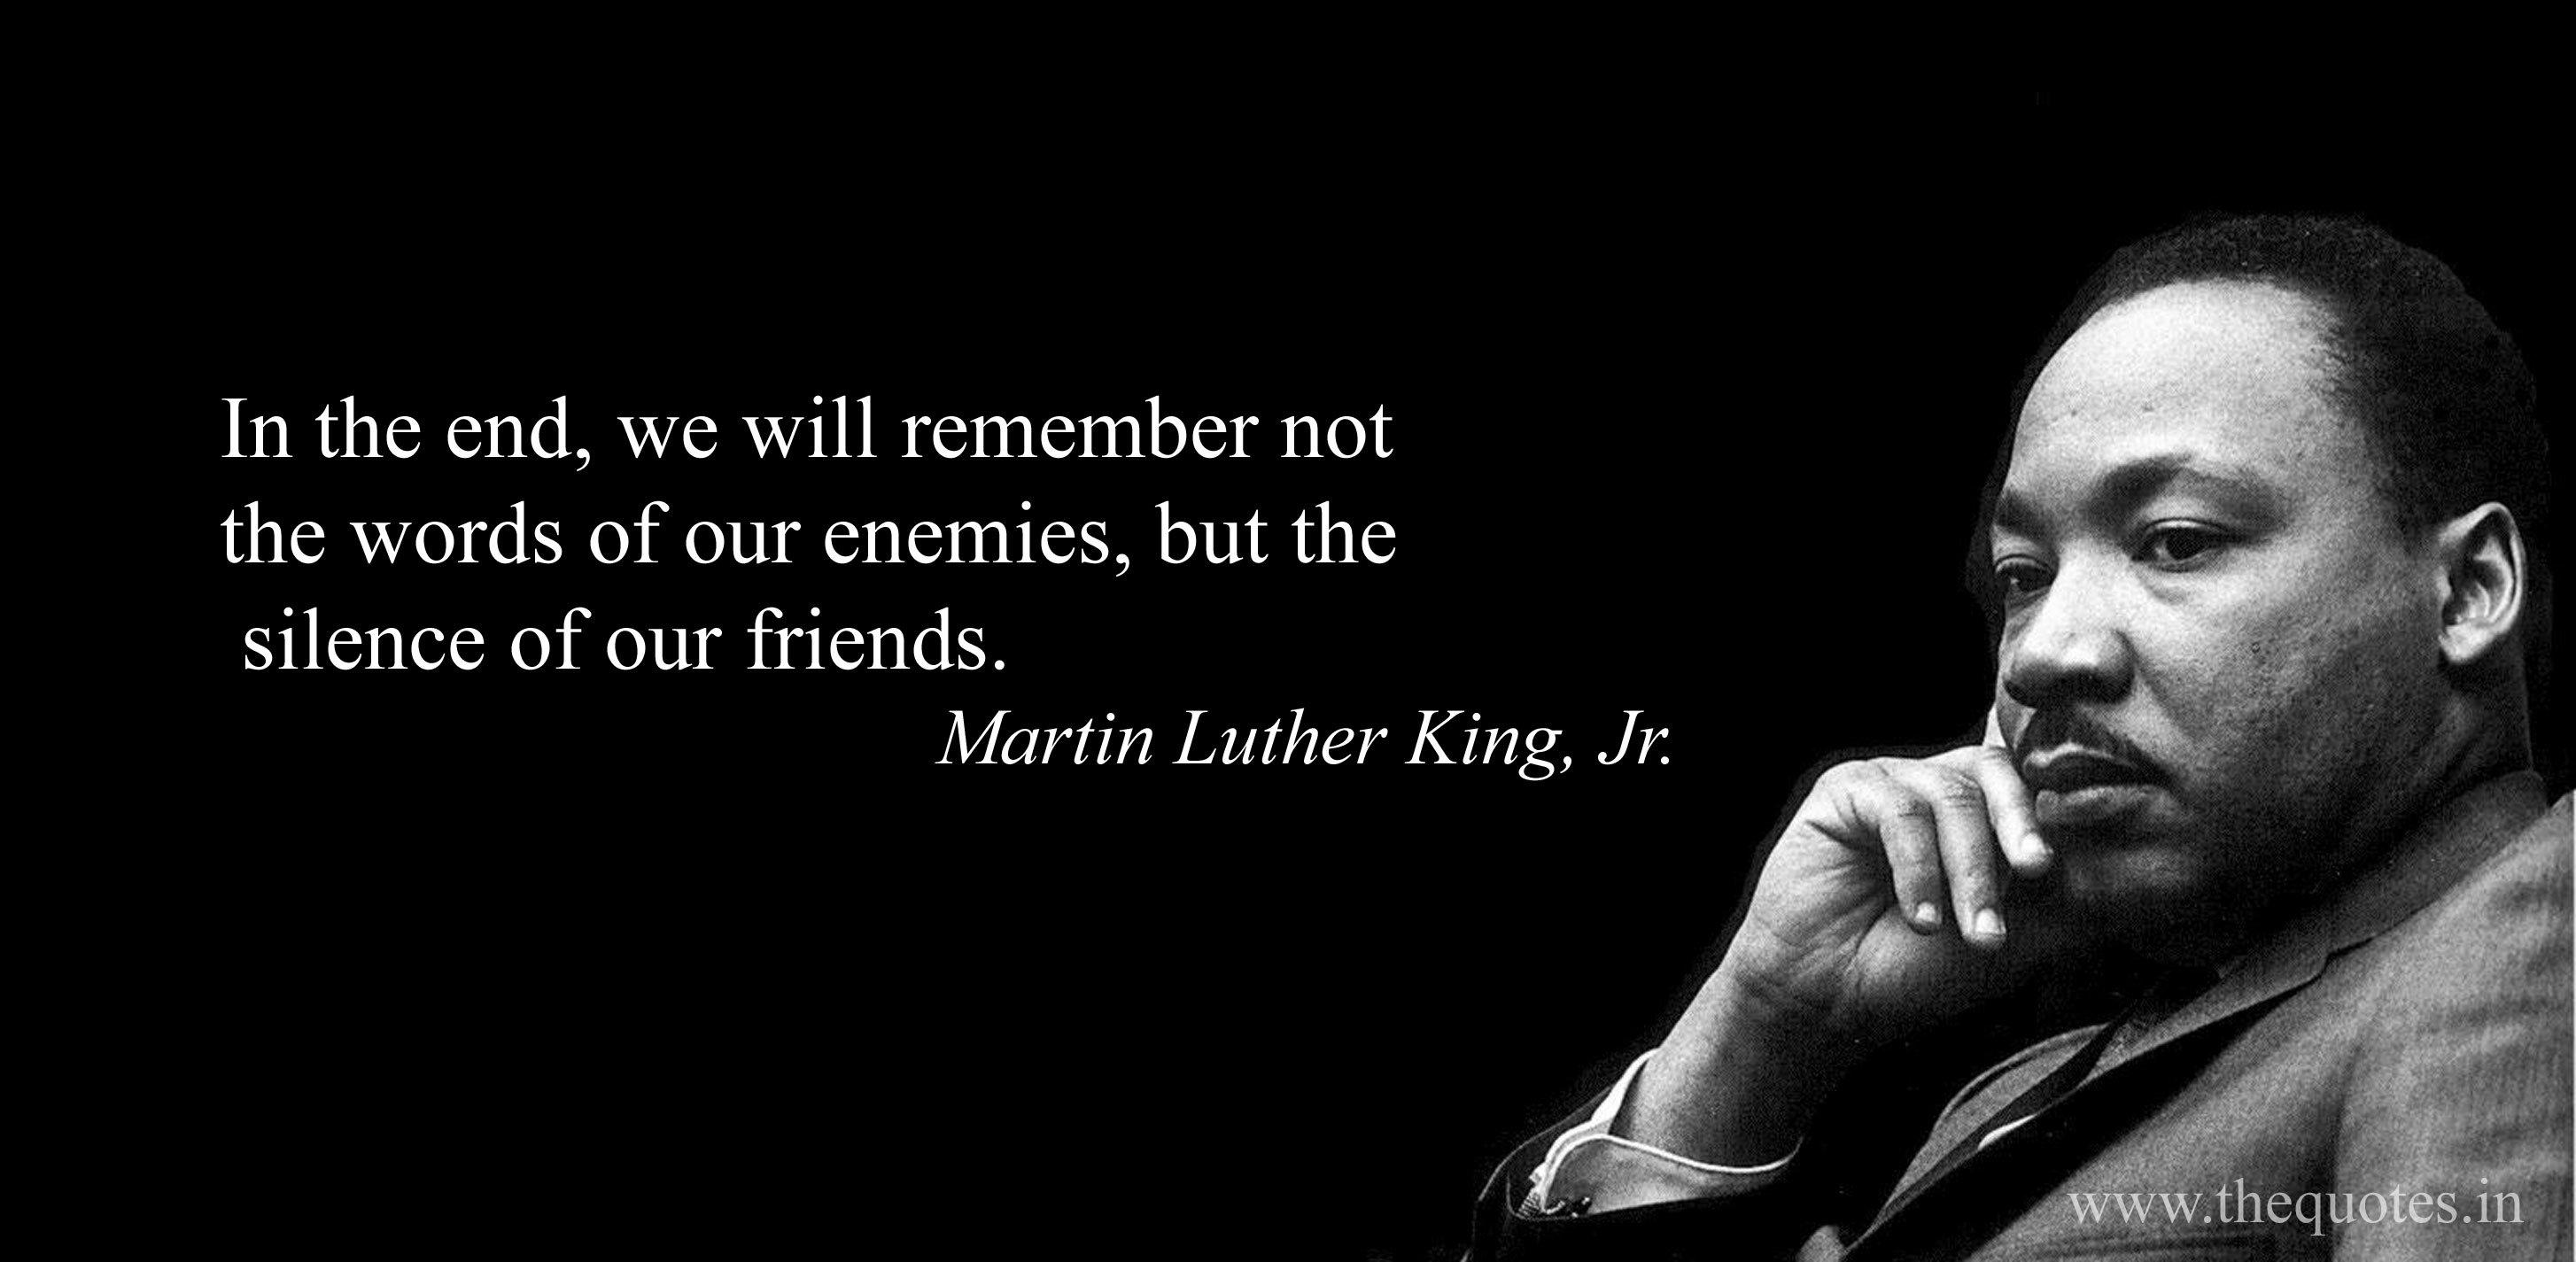 mlk silence quote 2017